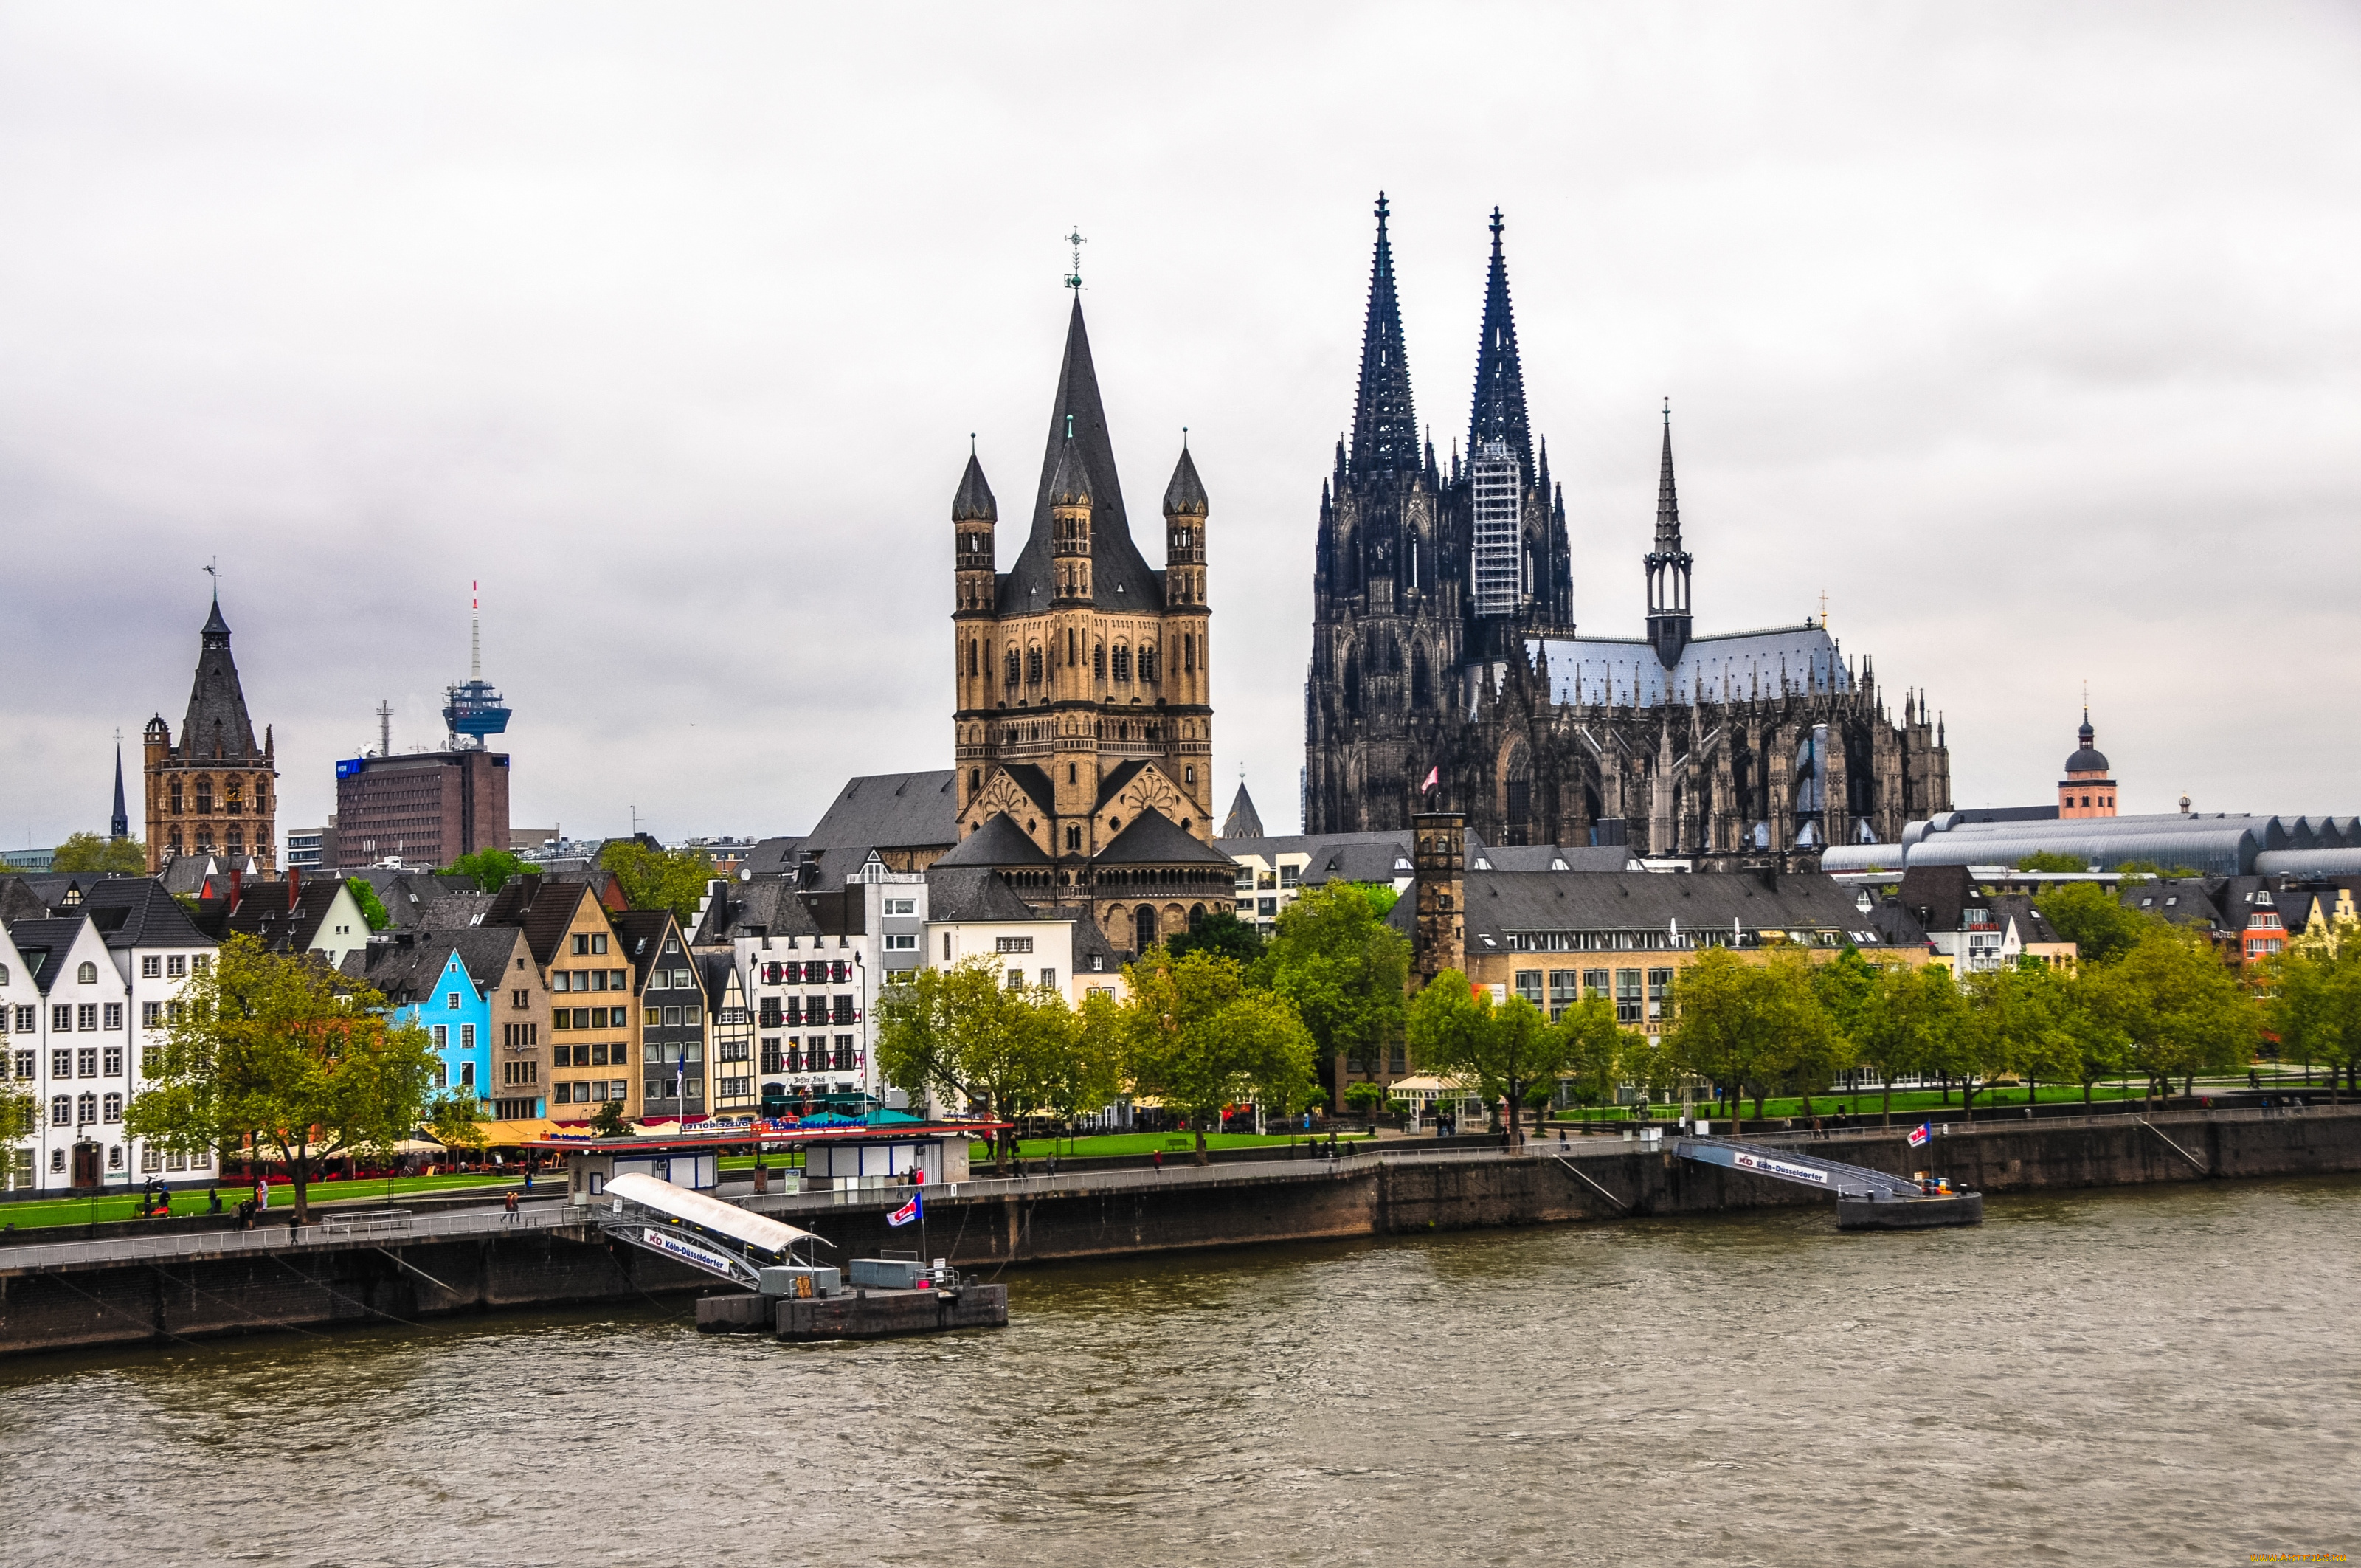 cologne germany weather forecast 10 days - HD1750×1021